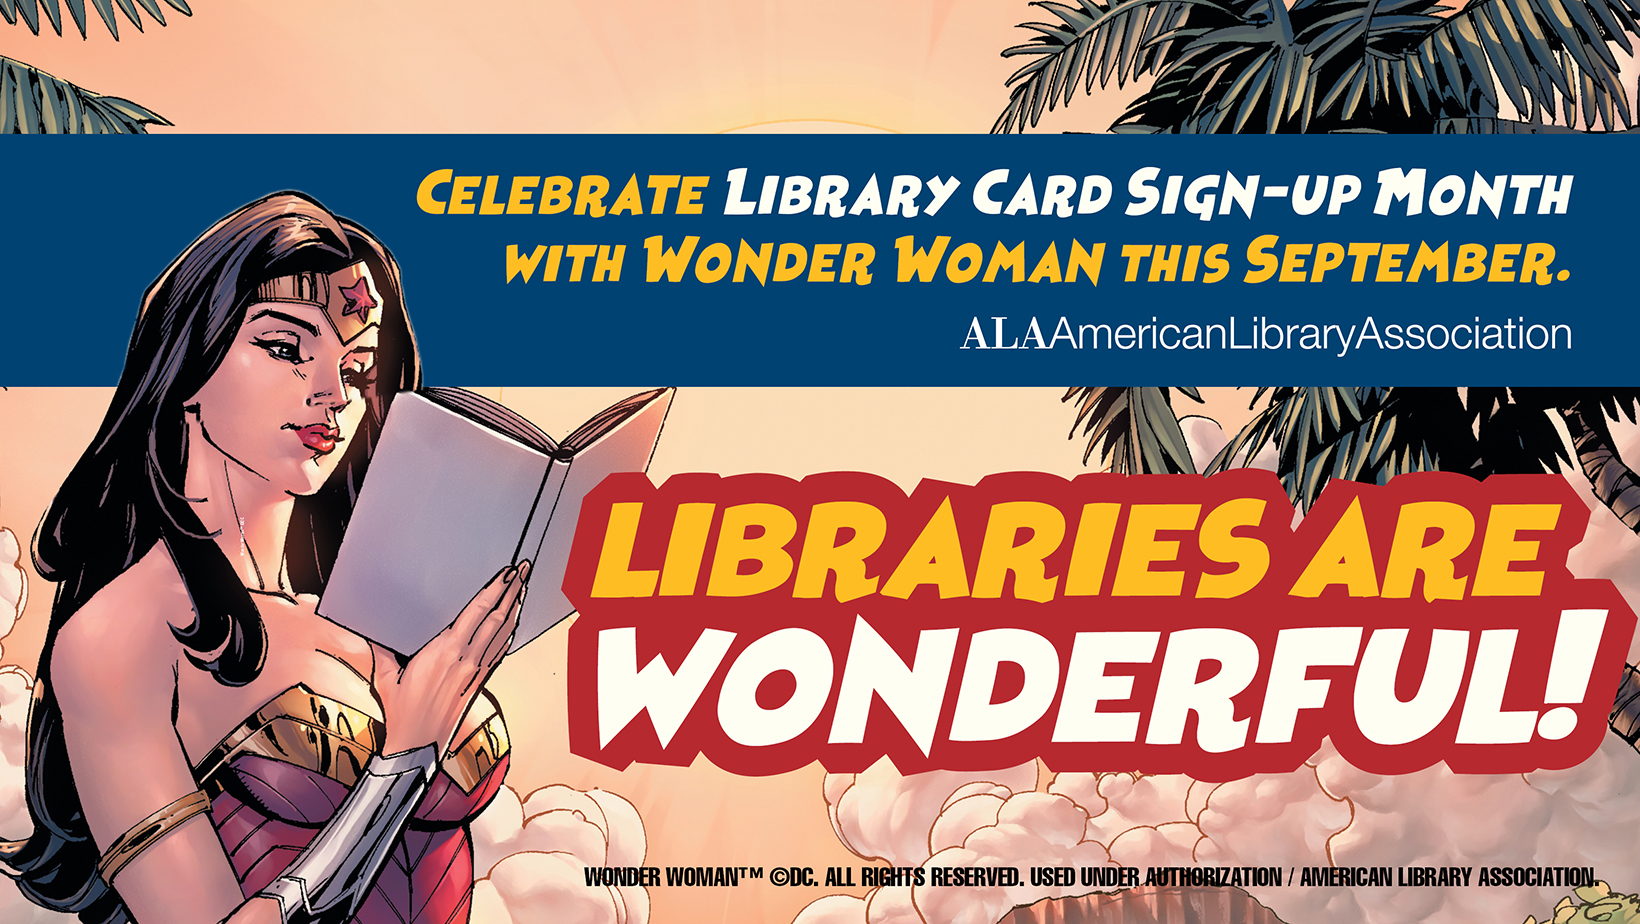 Celebrate Library Card Month with Wonder Woman!